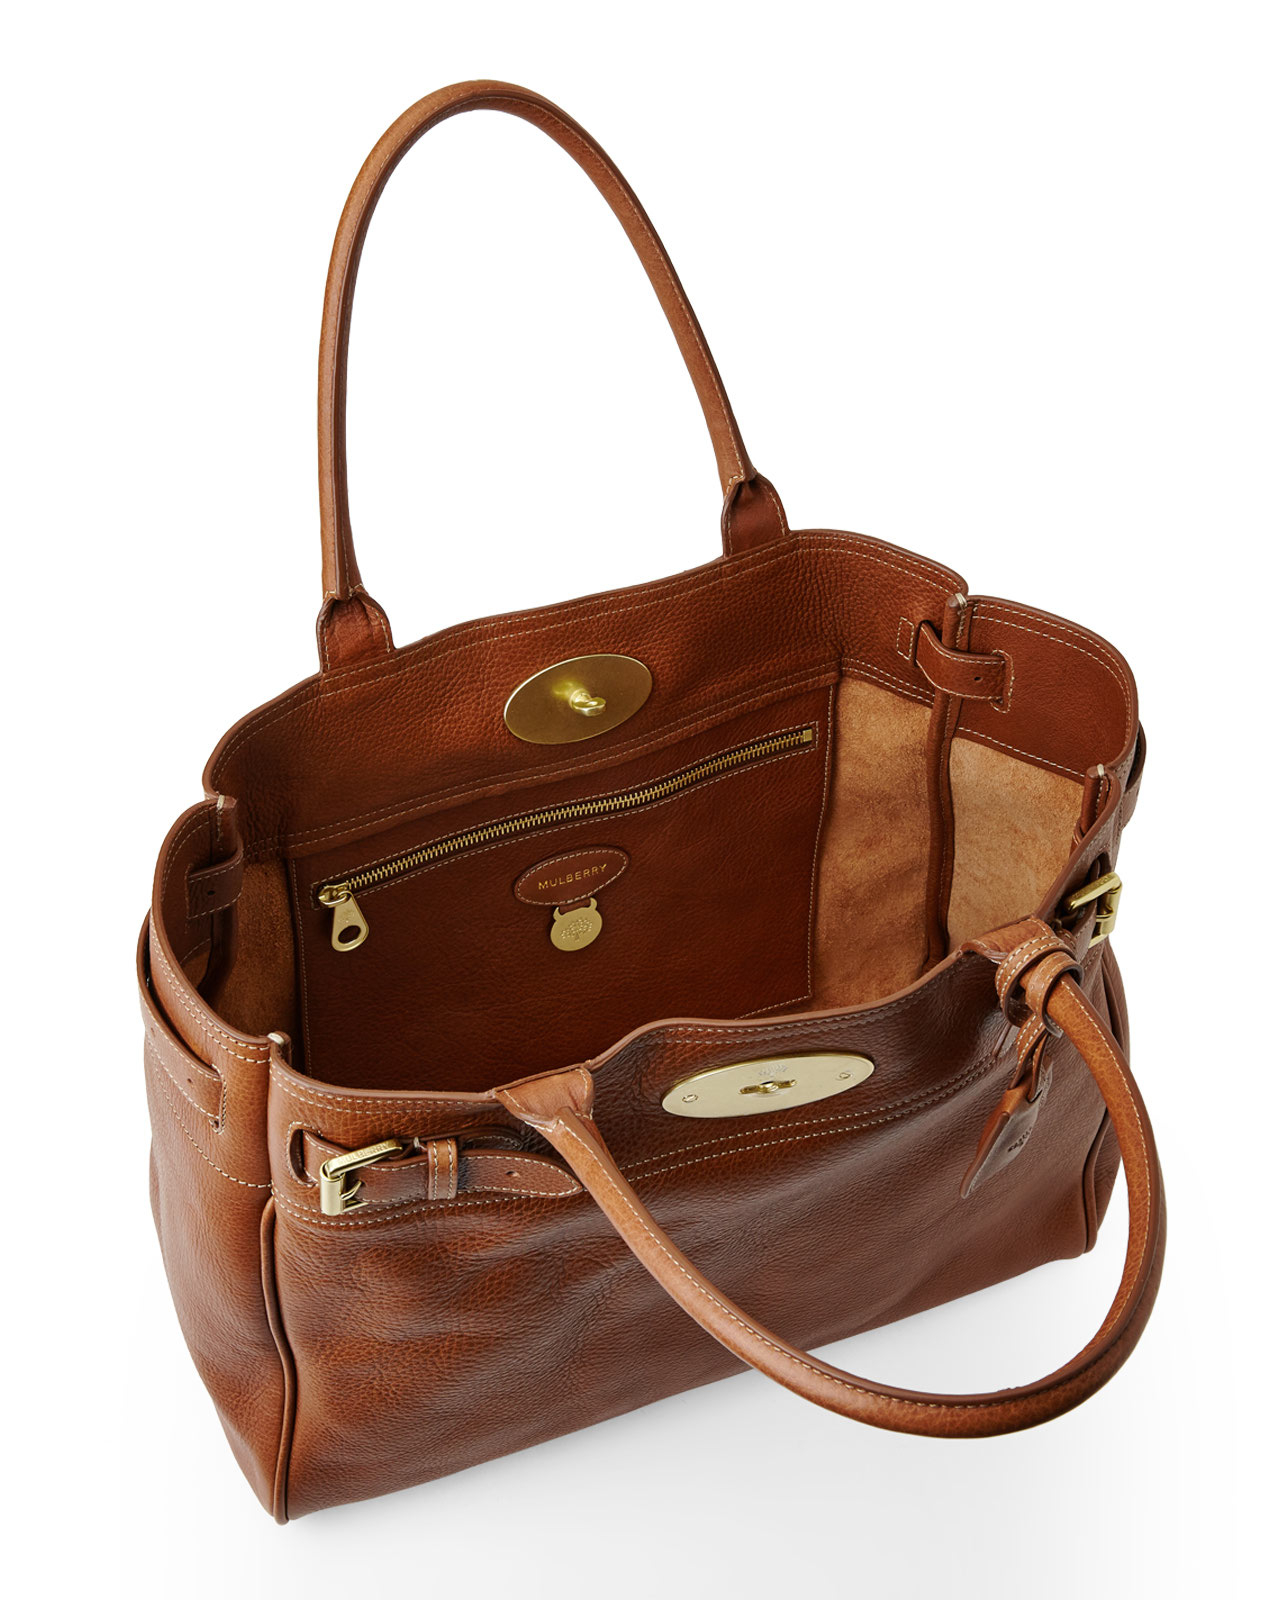 ... best price lyst mulberry oak bayswater tote in brown cd058 678a9 ... f3a948403c179